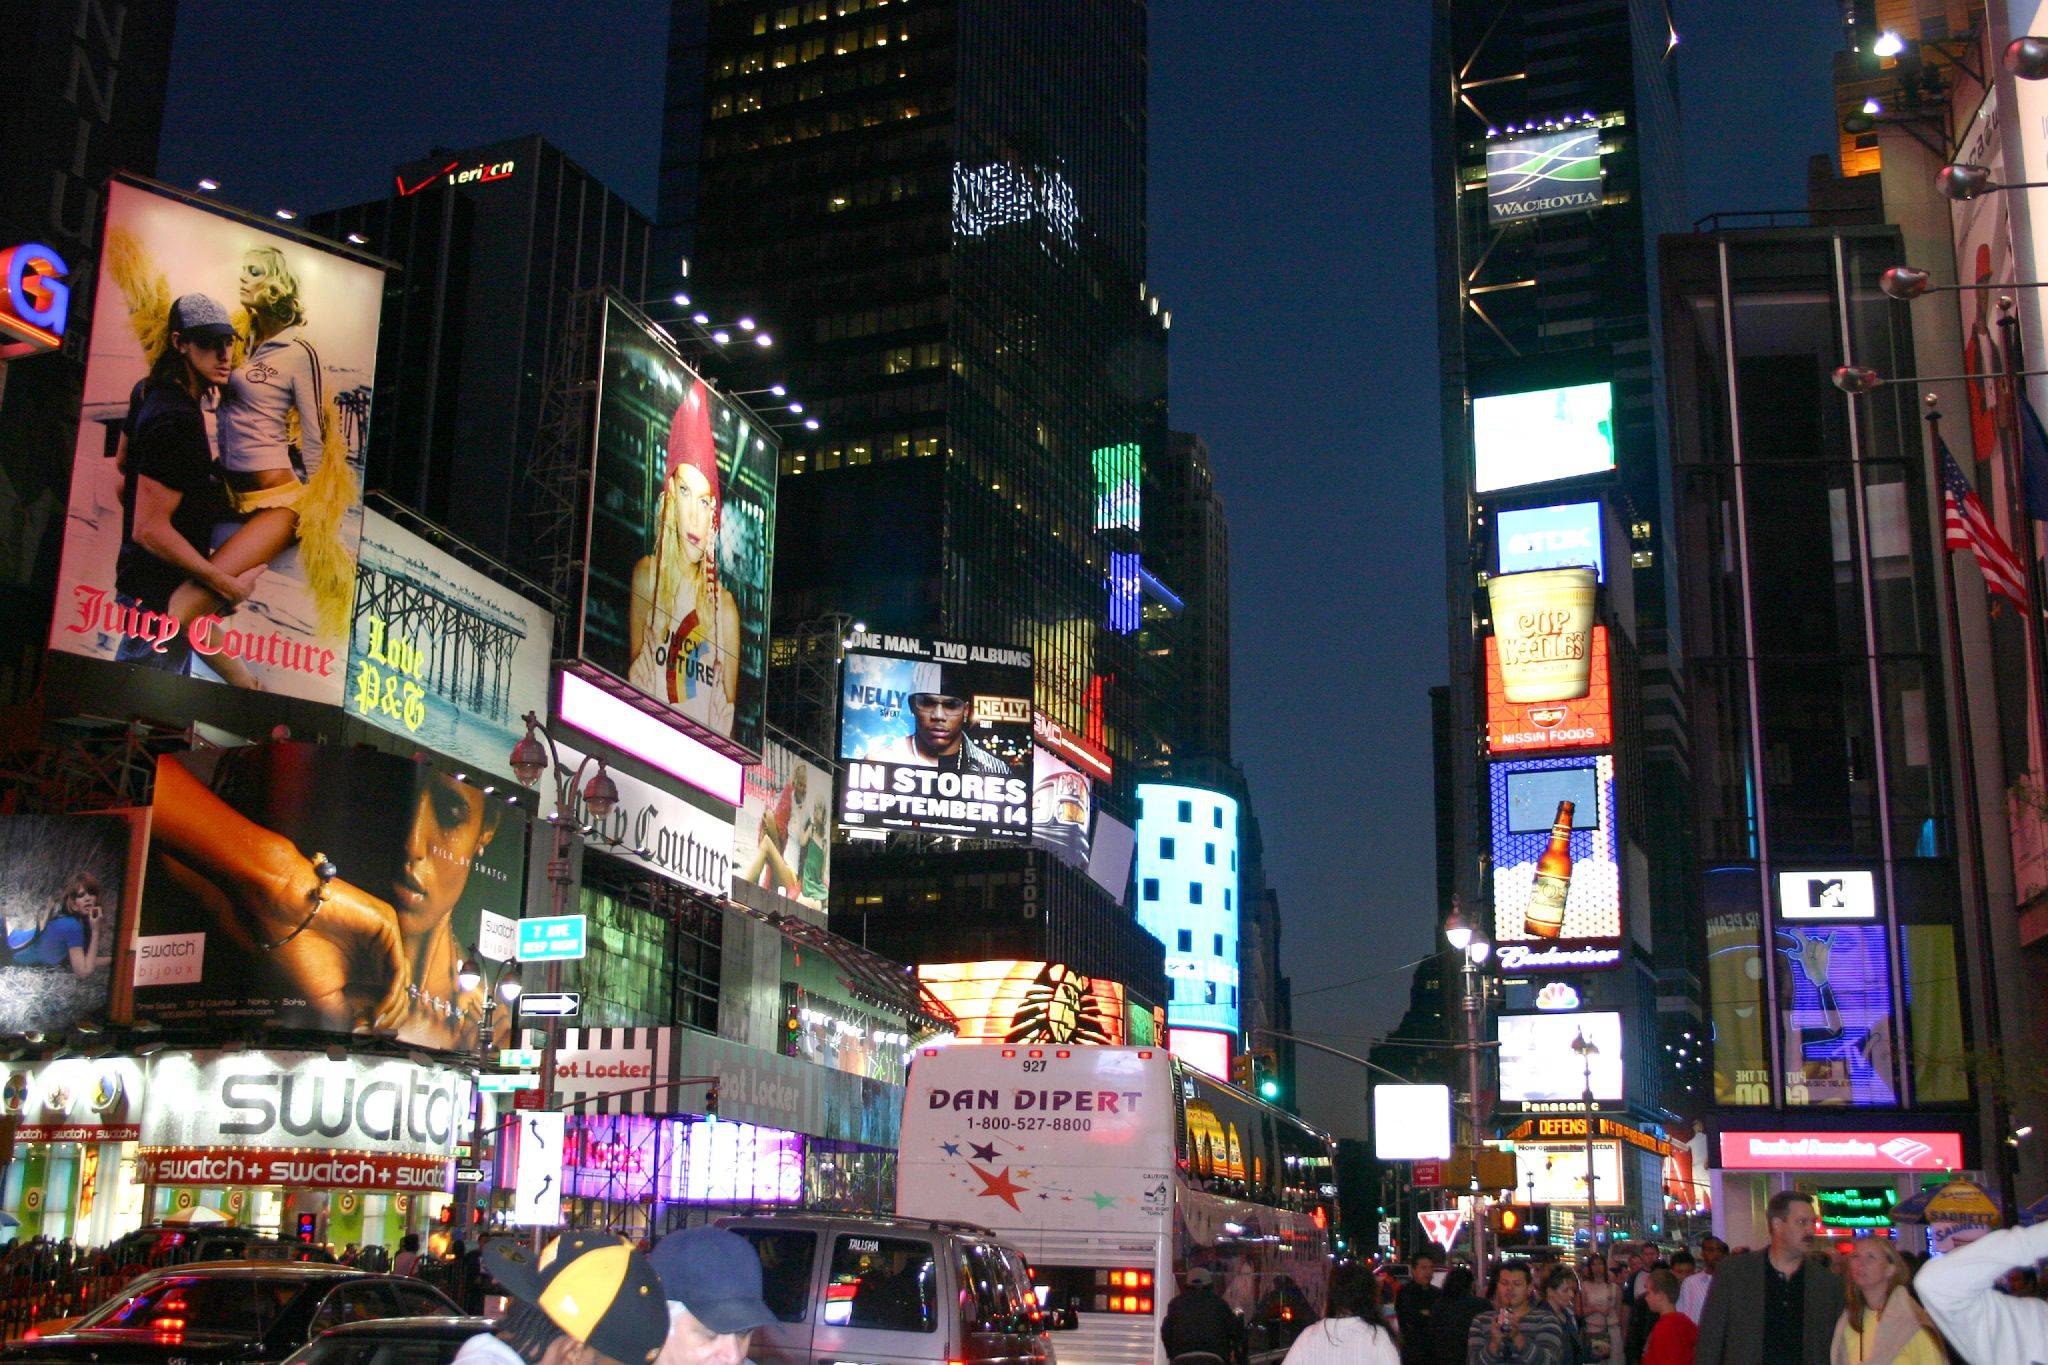 Description times square at night